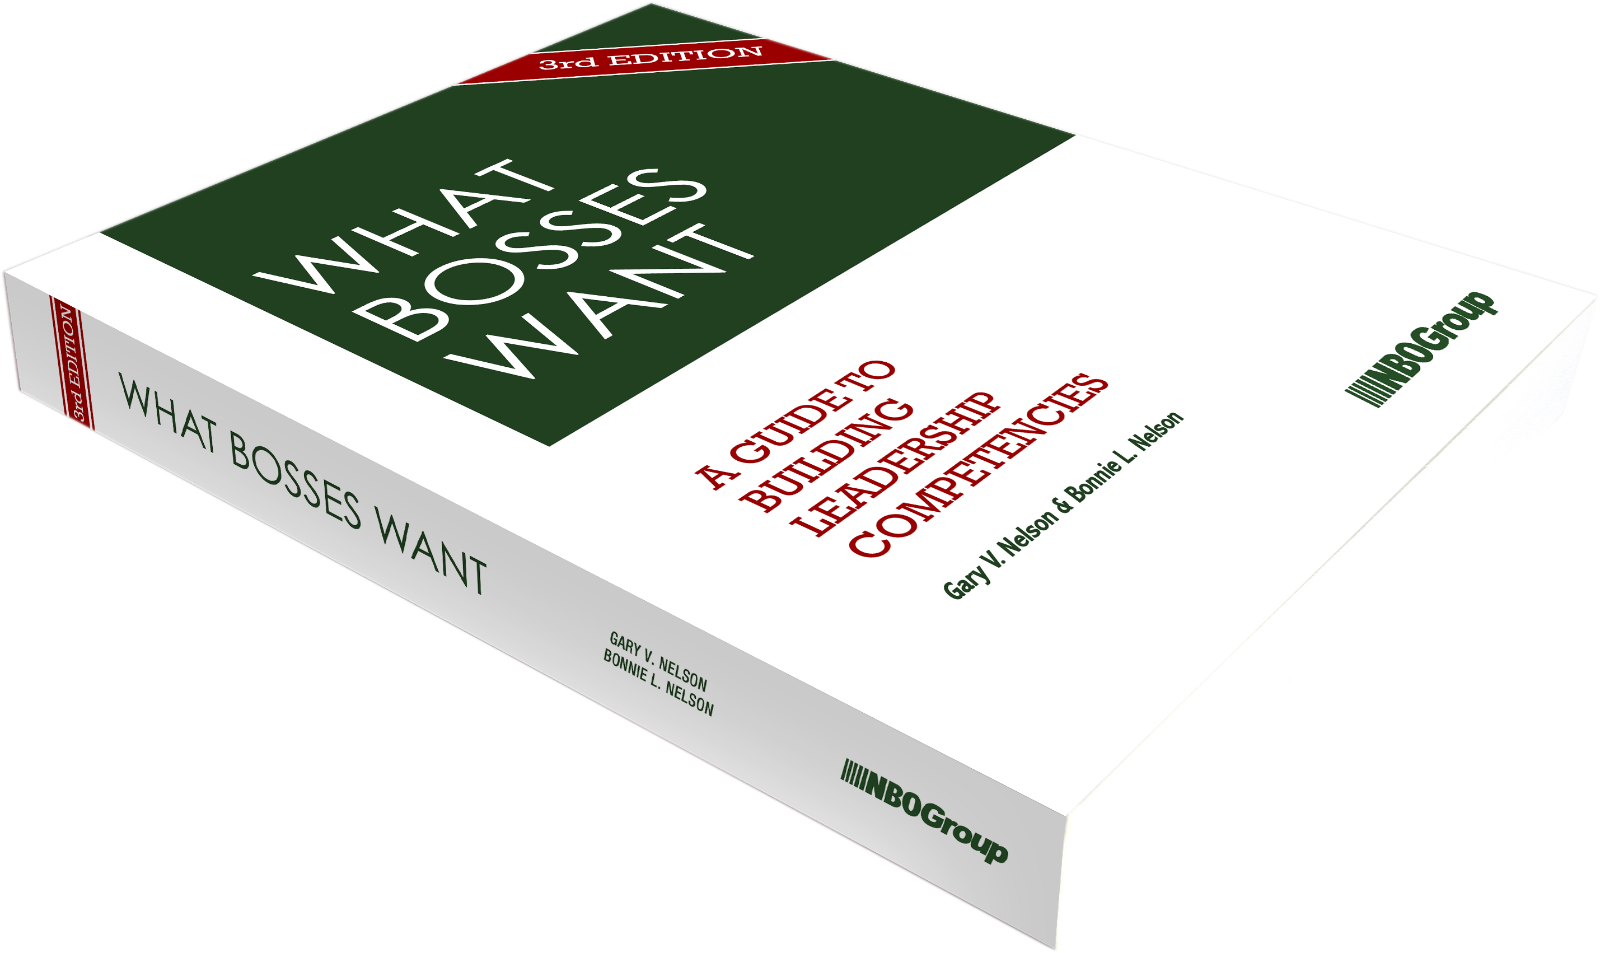 What Bosses Want: A Guide to Building Leadership Competencies, 3rd Edition (Print)